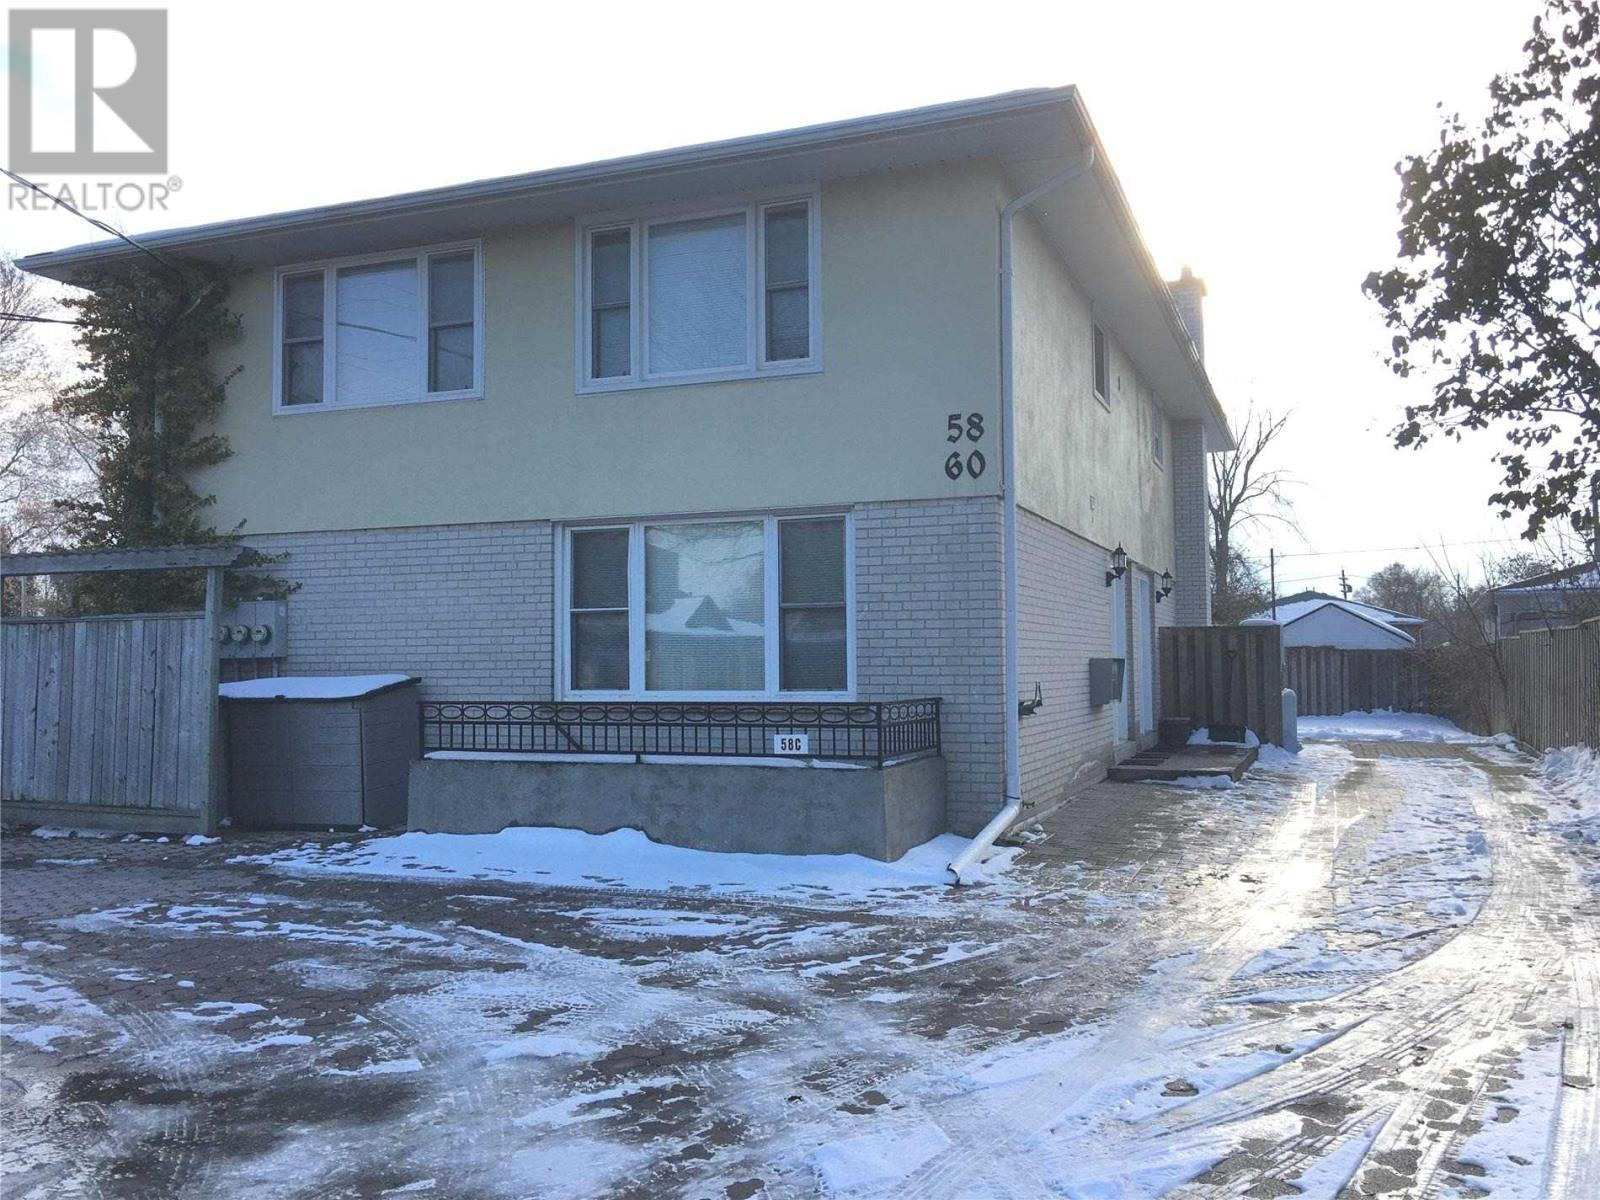 58 & 60 Queen St S, Mississauga, Ontario  L5M 1K4 - Photo 1 - W4635305